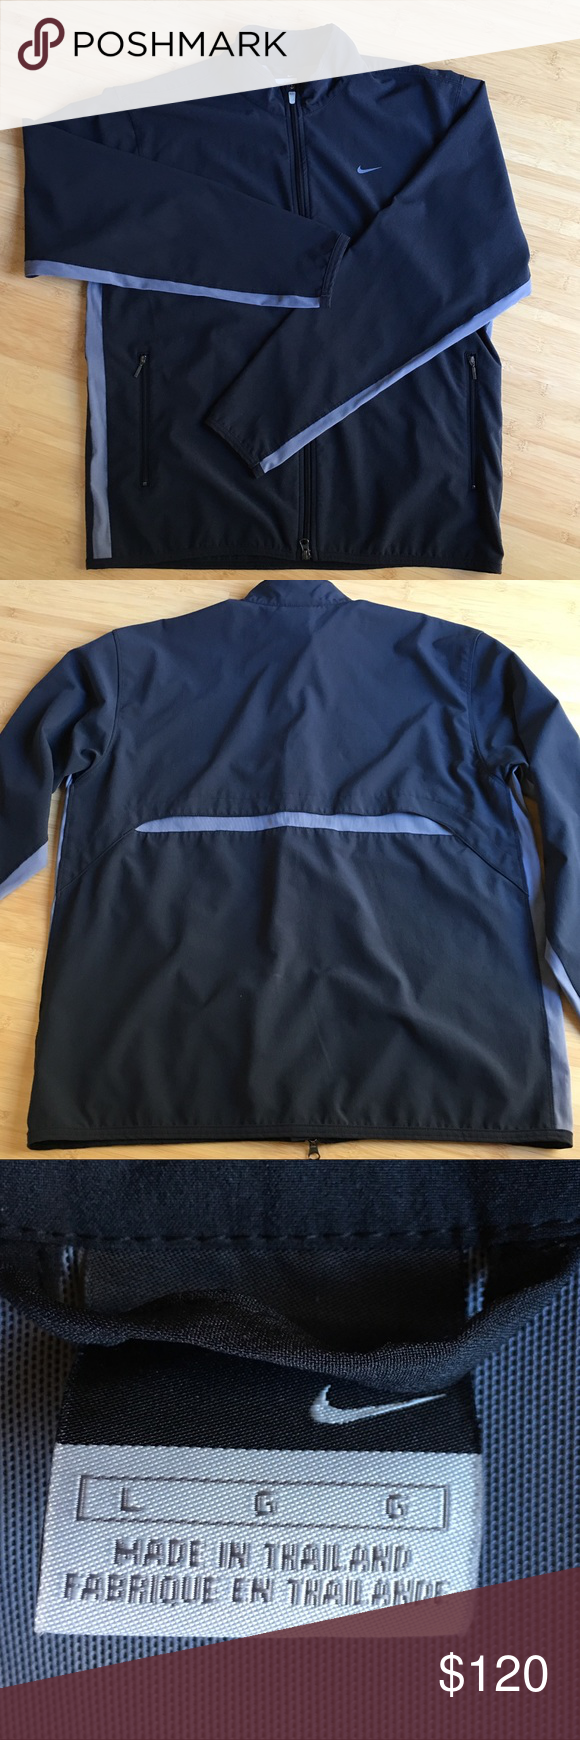 ff4834b9d3 🖤Men s Nike windbreaker - L ⭐️Nike windbreaker Zip up front Vent in back  Black with grey detailing Excellent like-new condition Nike Jackets   Coats  ...